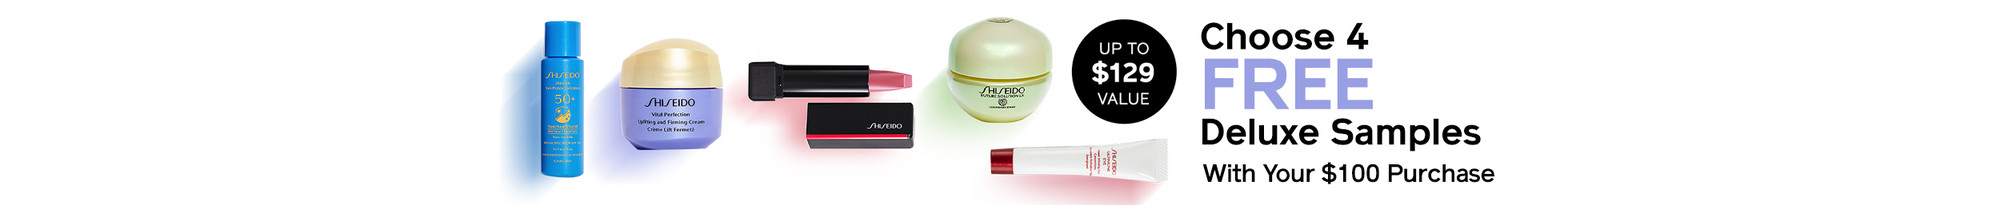 Choose free 4 deluxe samples with your $100 purchase